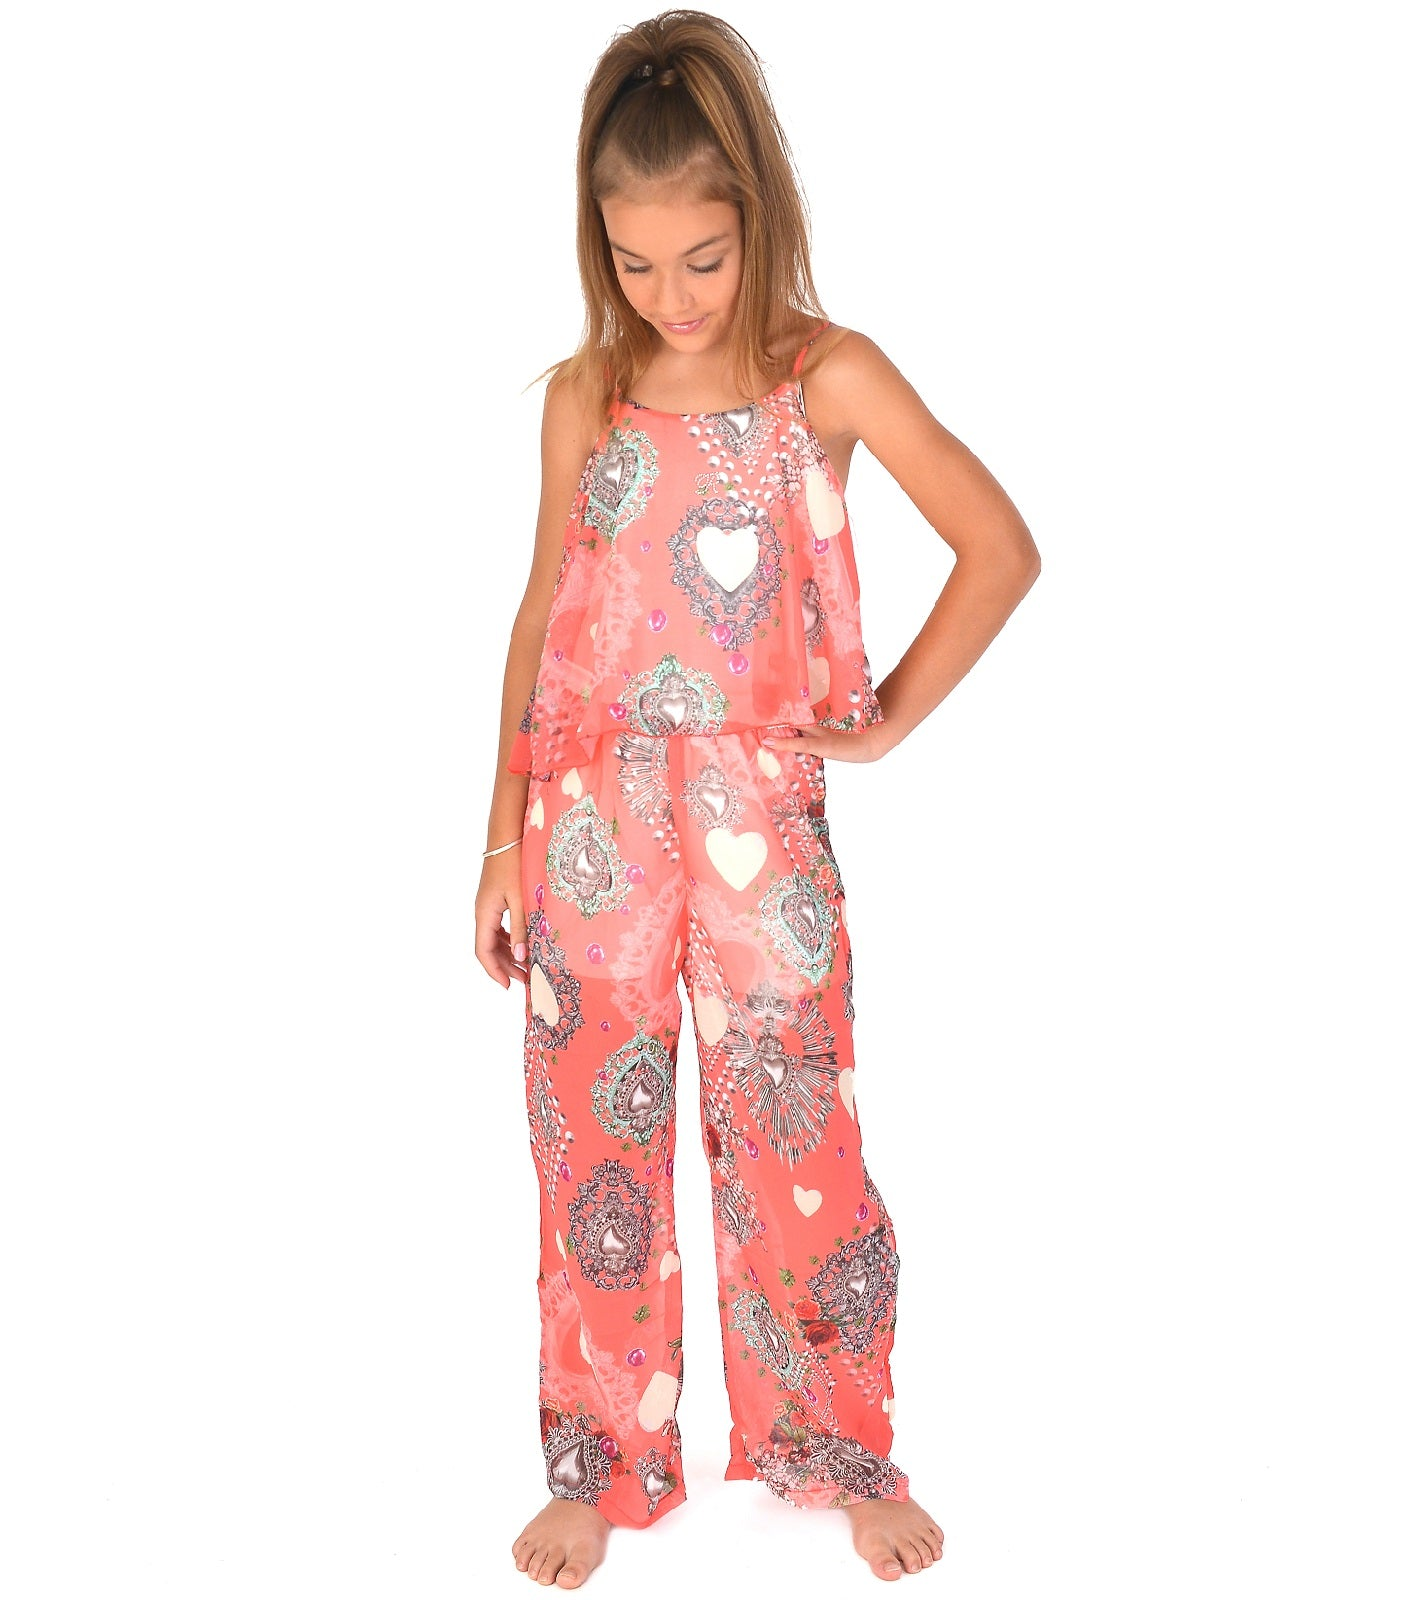 Girls Jumpsuit in Coral pink